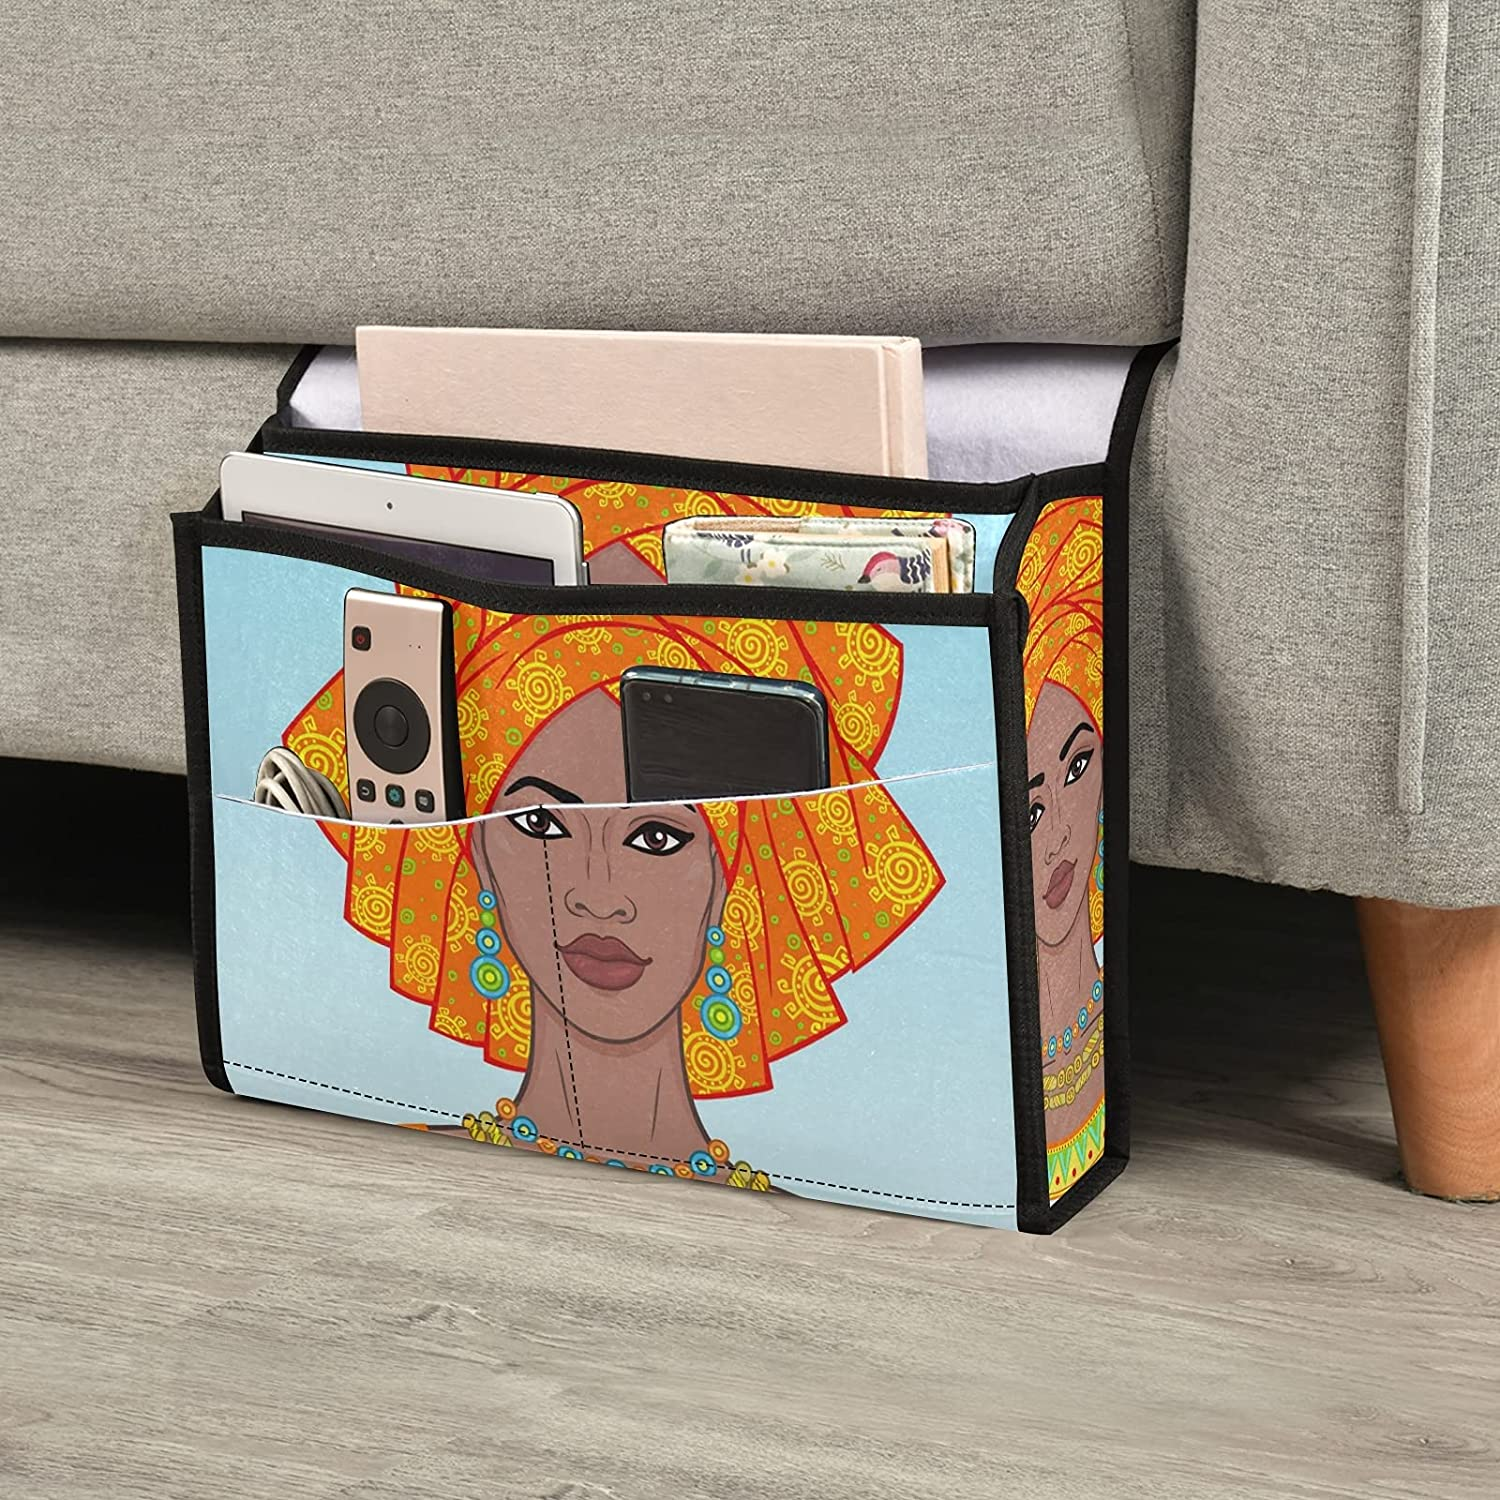 Max 52% OFF Black Woman Bedside Caddy Storage Table Bed Organizer Gifts Ca